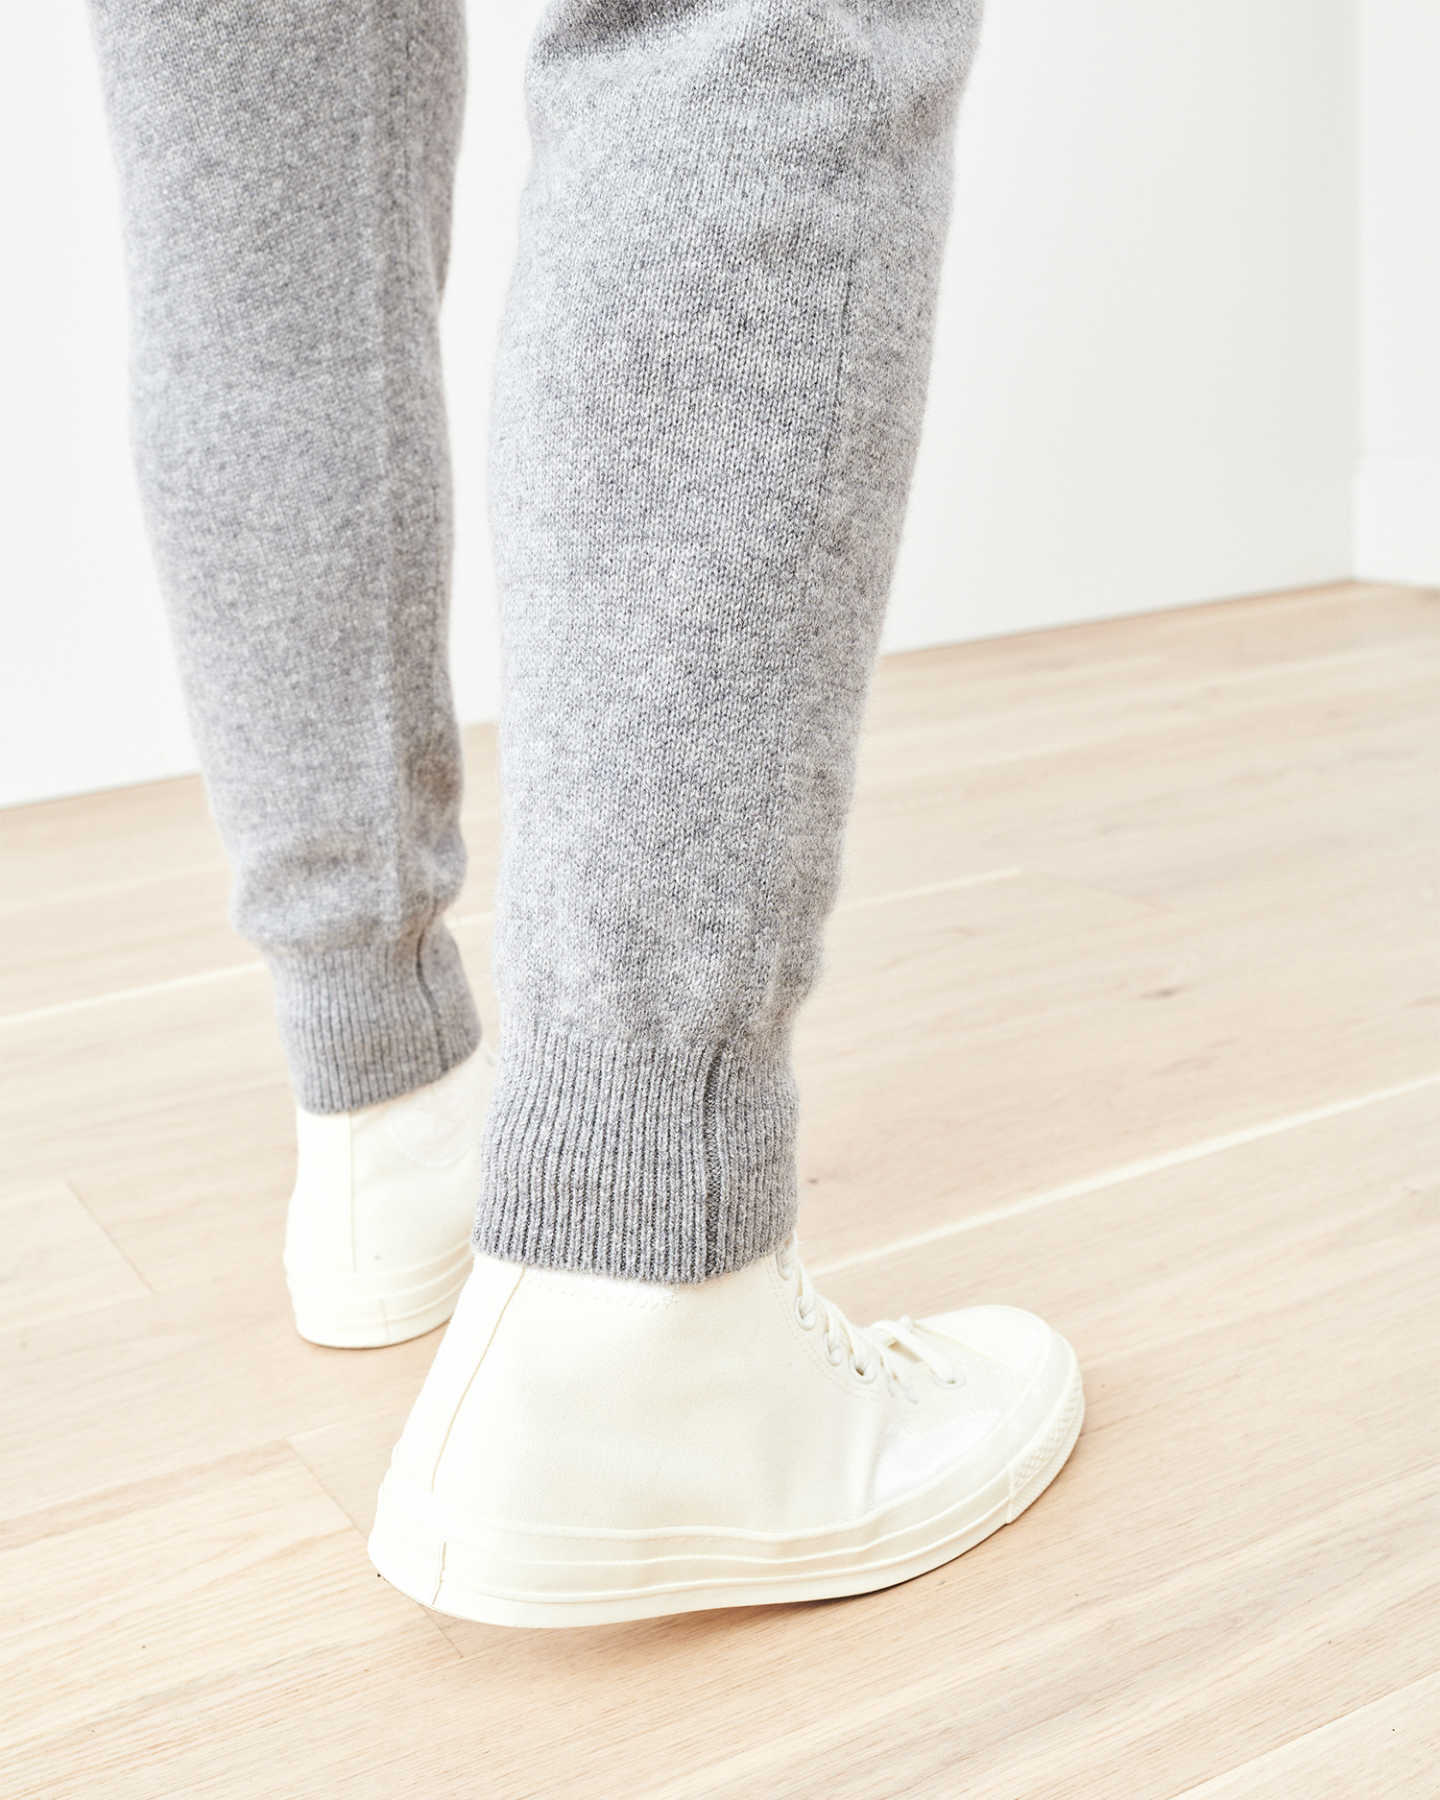 Man wearing cashmere men's cashmere joggers / cashmere sweatpants in grey and white shoes